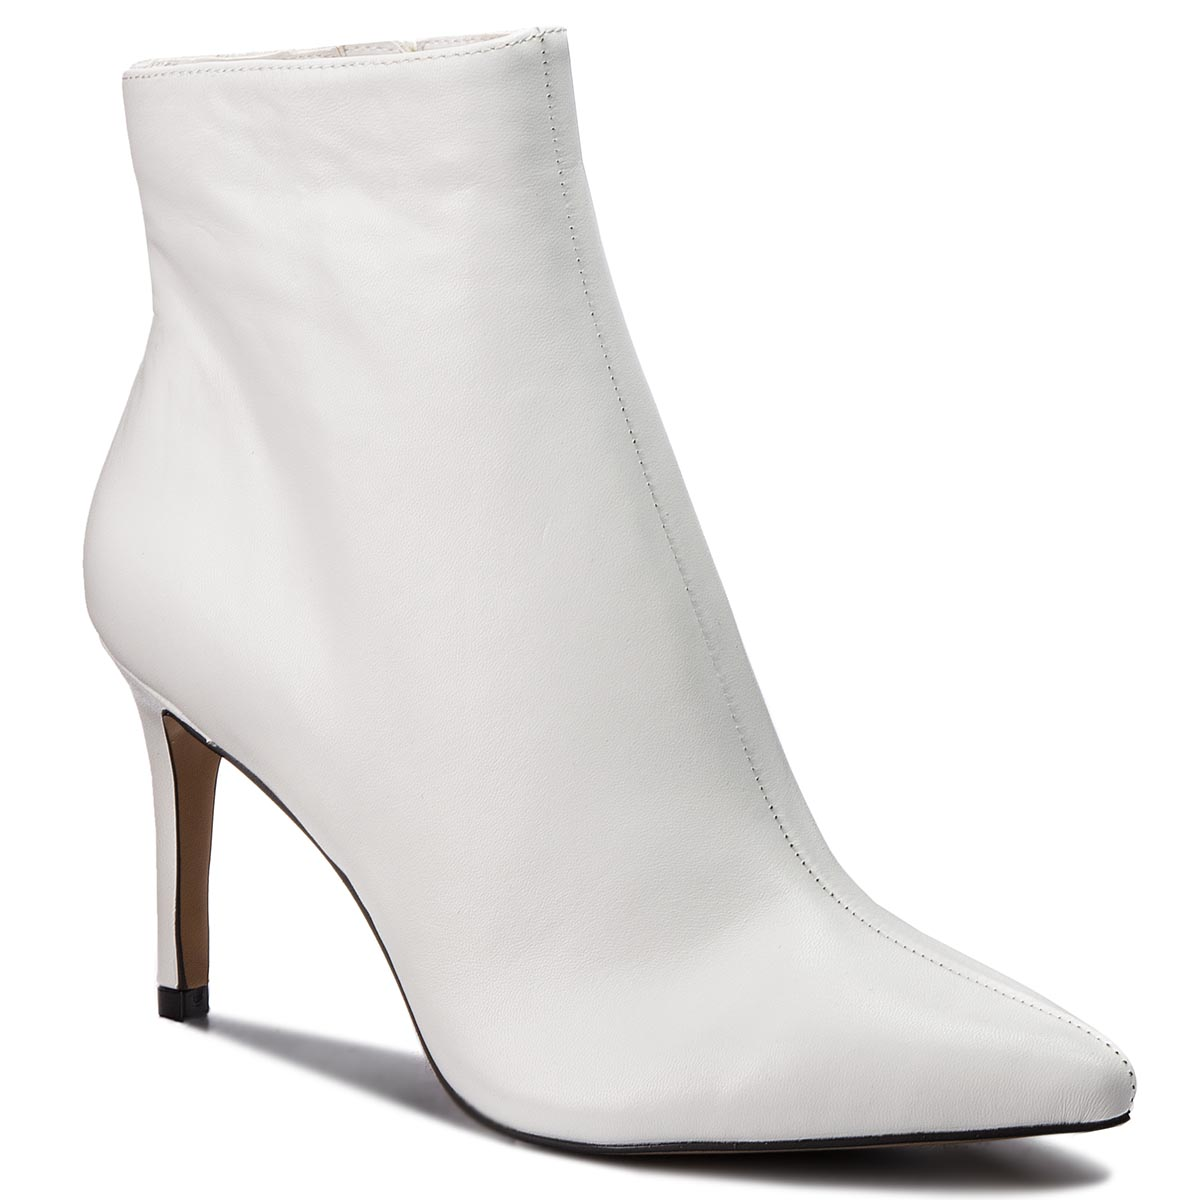 Botine STEVE MADDEN - Logic Ankle Boot SM11000195-03001-107 White Leather